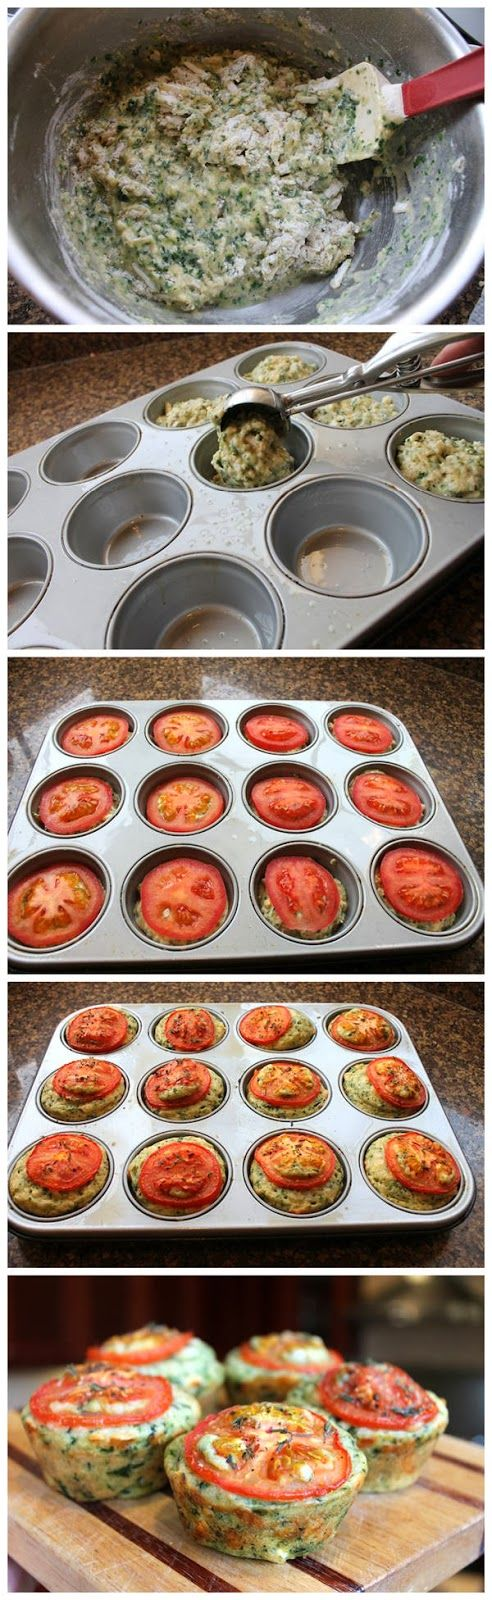 Cheesy Spinach Muffins.